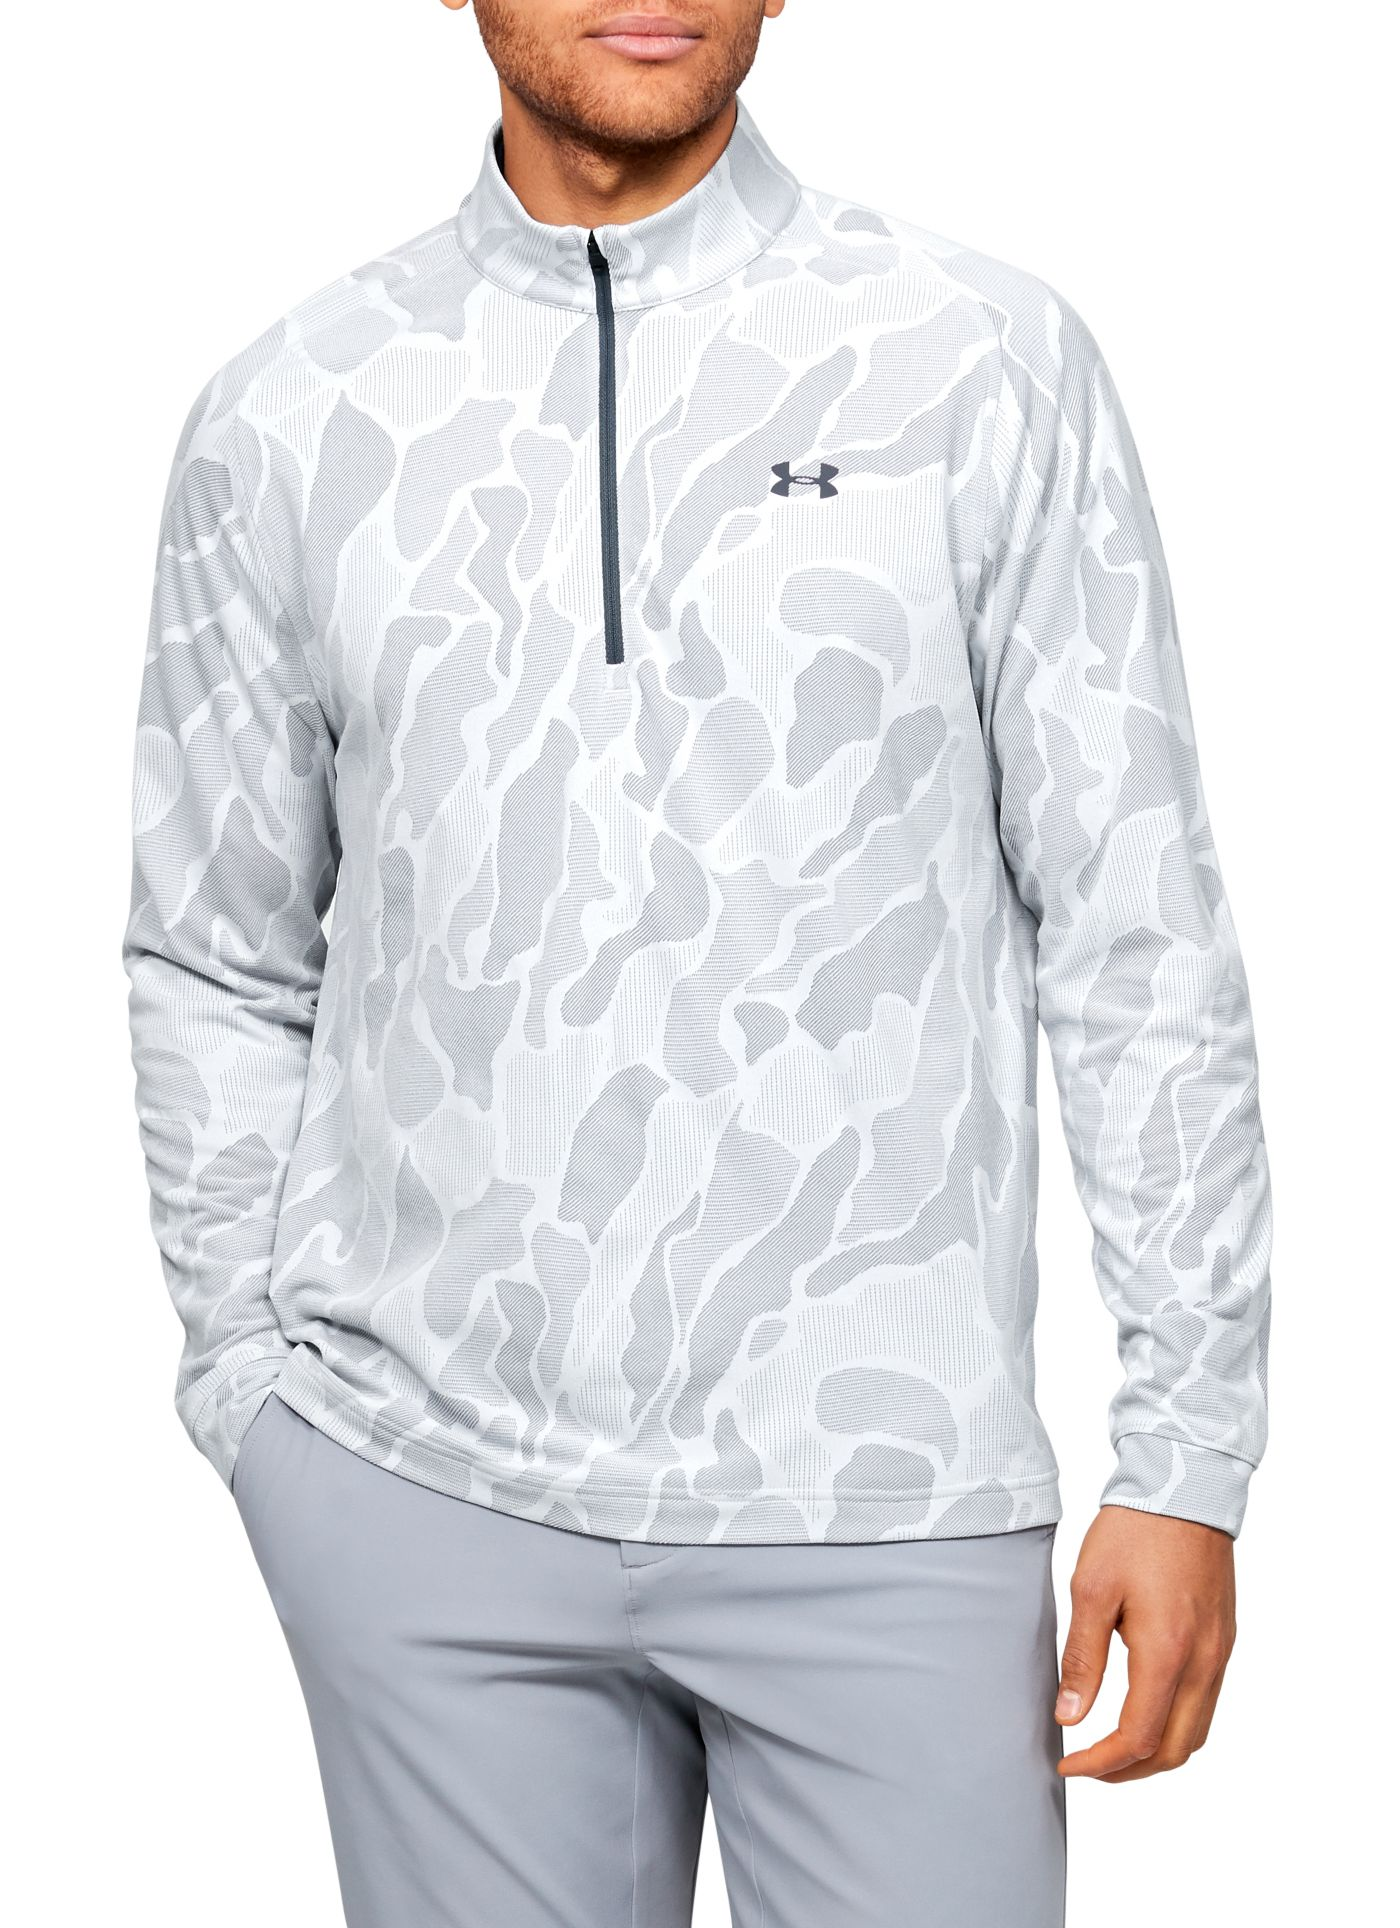 Under Armour Men's Vanish ¼ Zip Golf Pullover